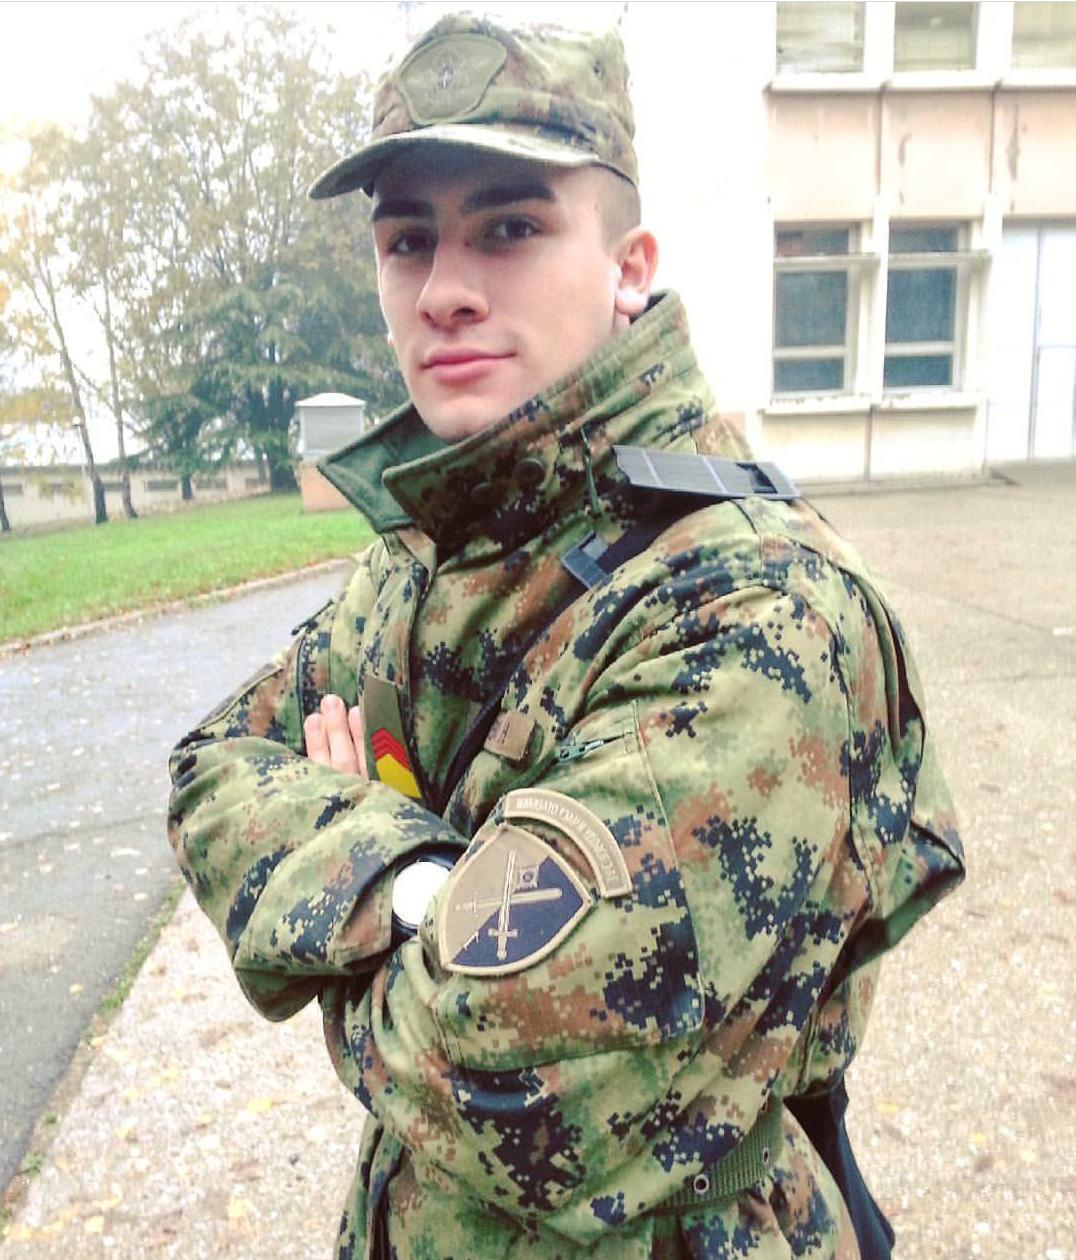 handsome-young-german-soldier-military-uniform